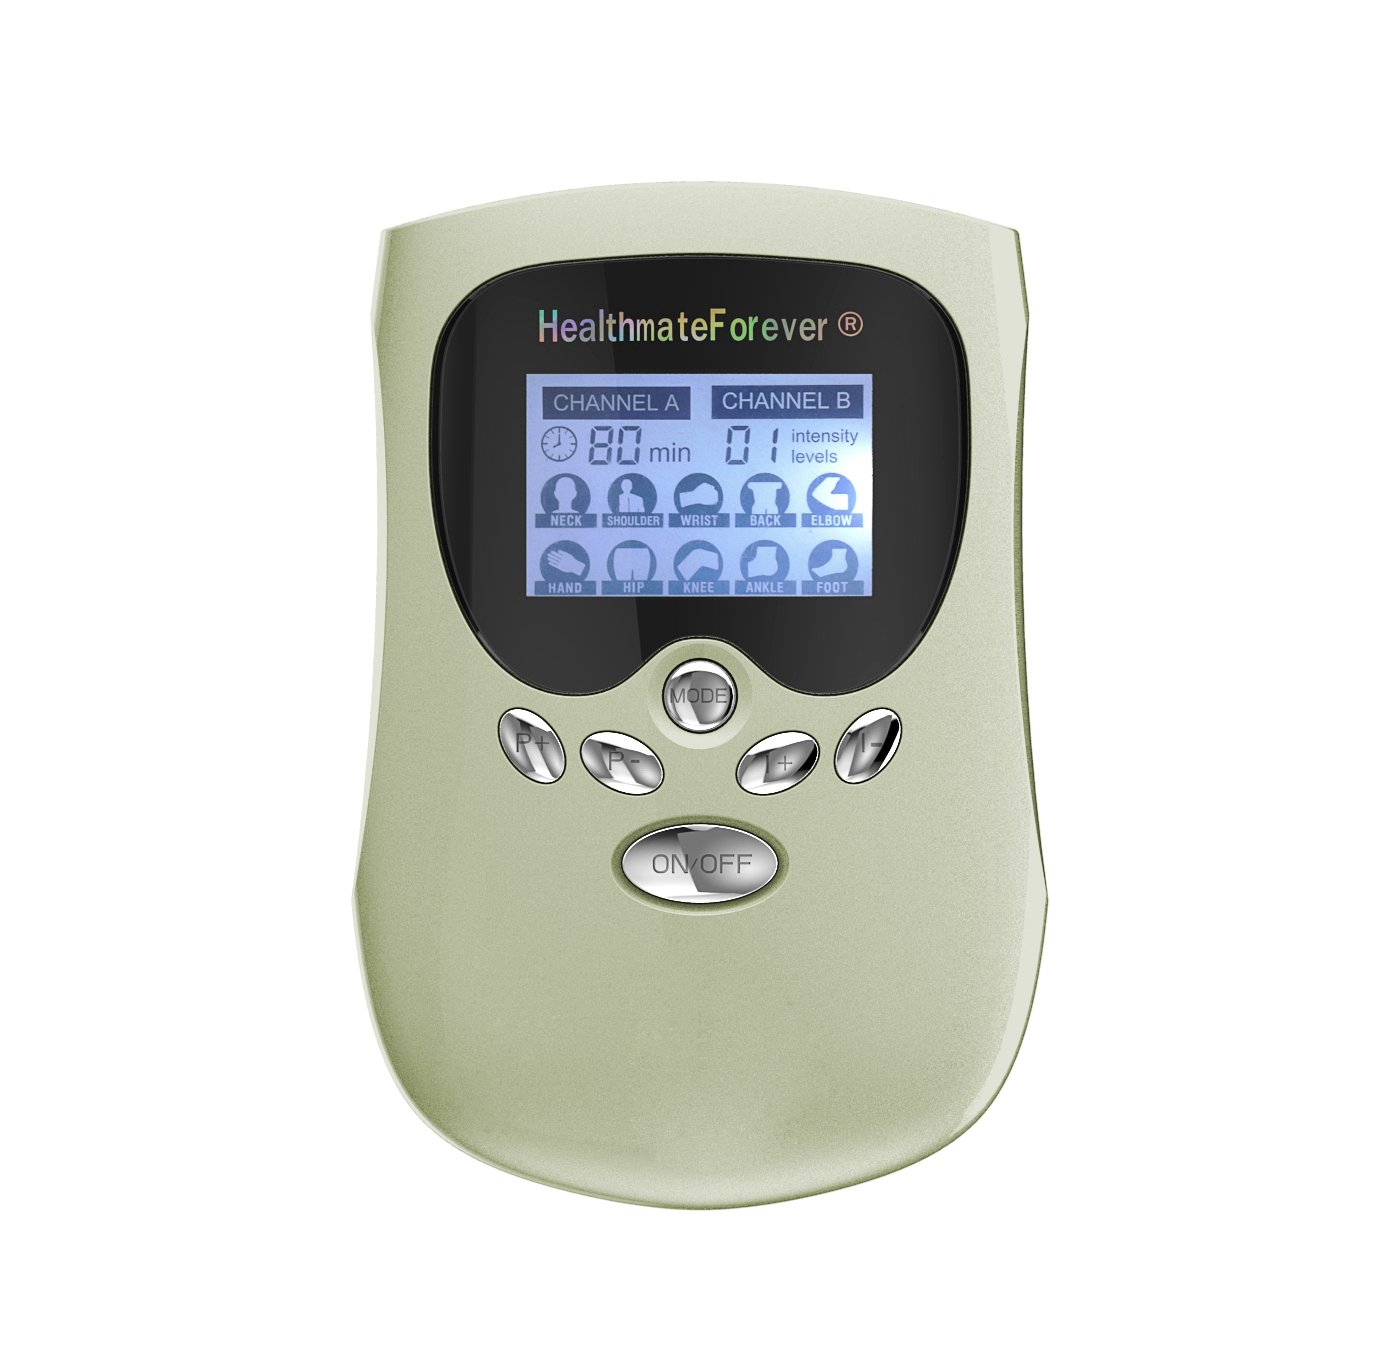 PM10AB HealthmateForever TENS Unit Electrical Muscle Stimulator Green + 4in1 Leads Wire and 1 Pair o